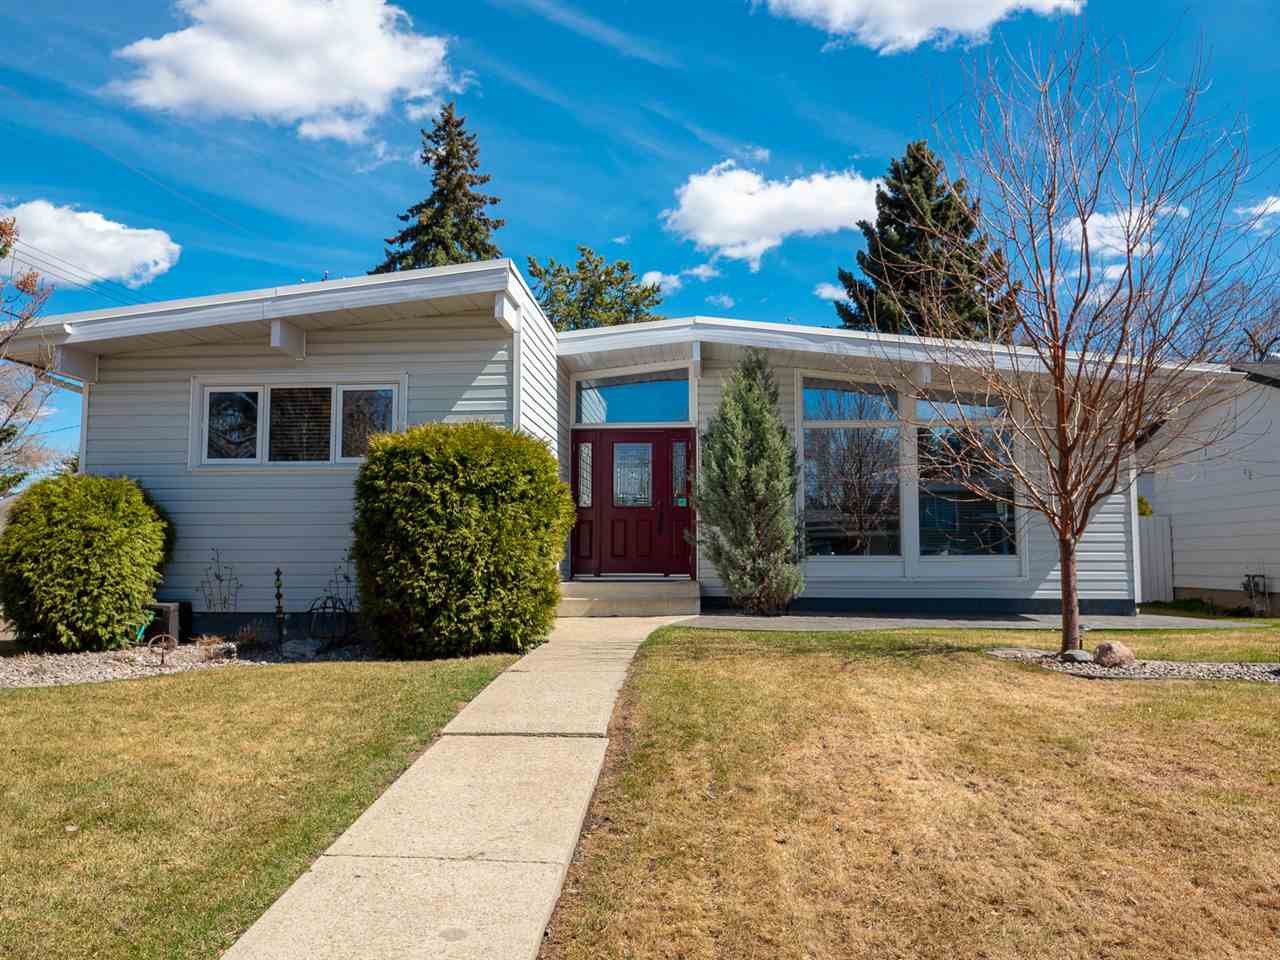 Main Photo: 4407 115 Street in Edmonton: Zone 16 House for sale : MLS®# E4199118